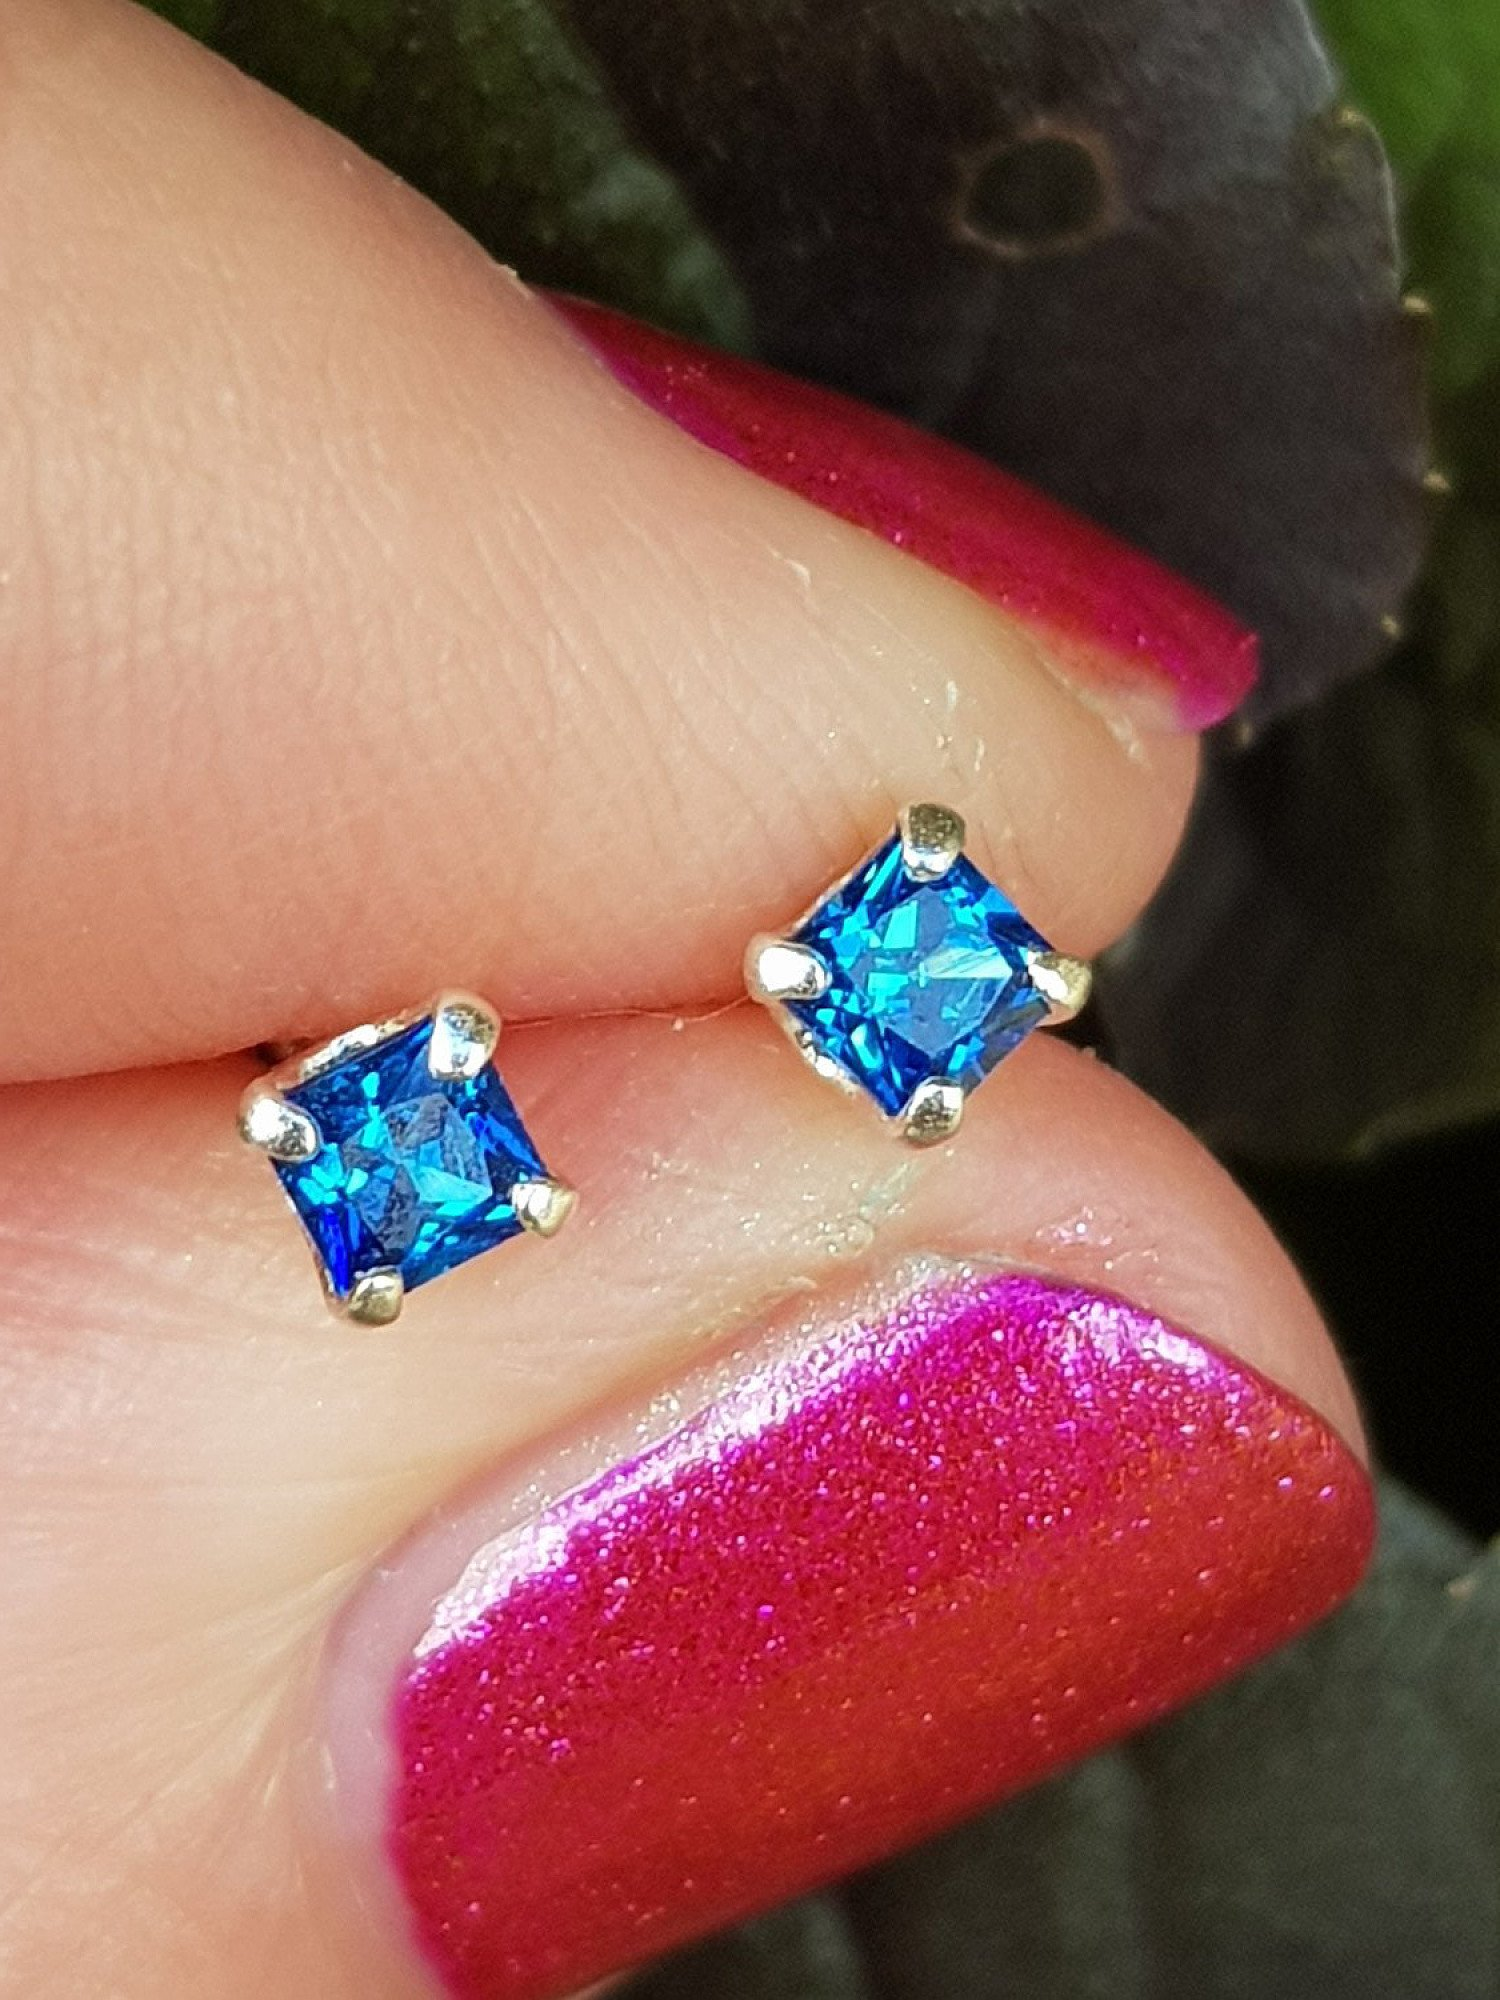 Silver, cubic zirconia medium sapphire stud earrings - 3mm - 0.35g - Only £6.25 Free UK delivery